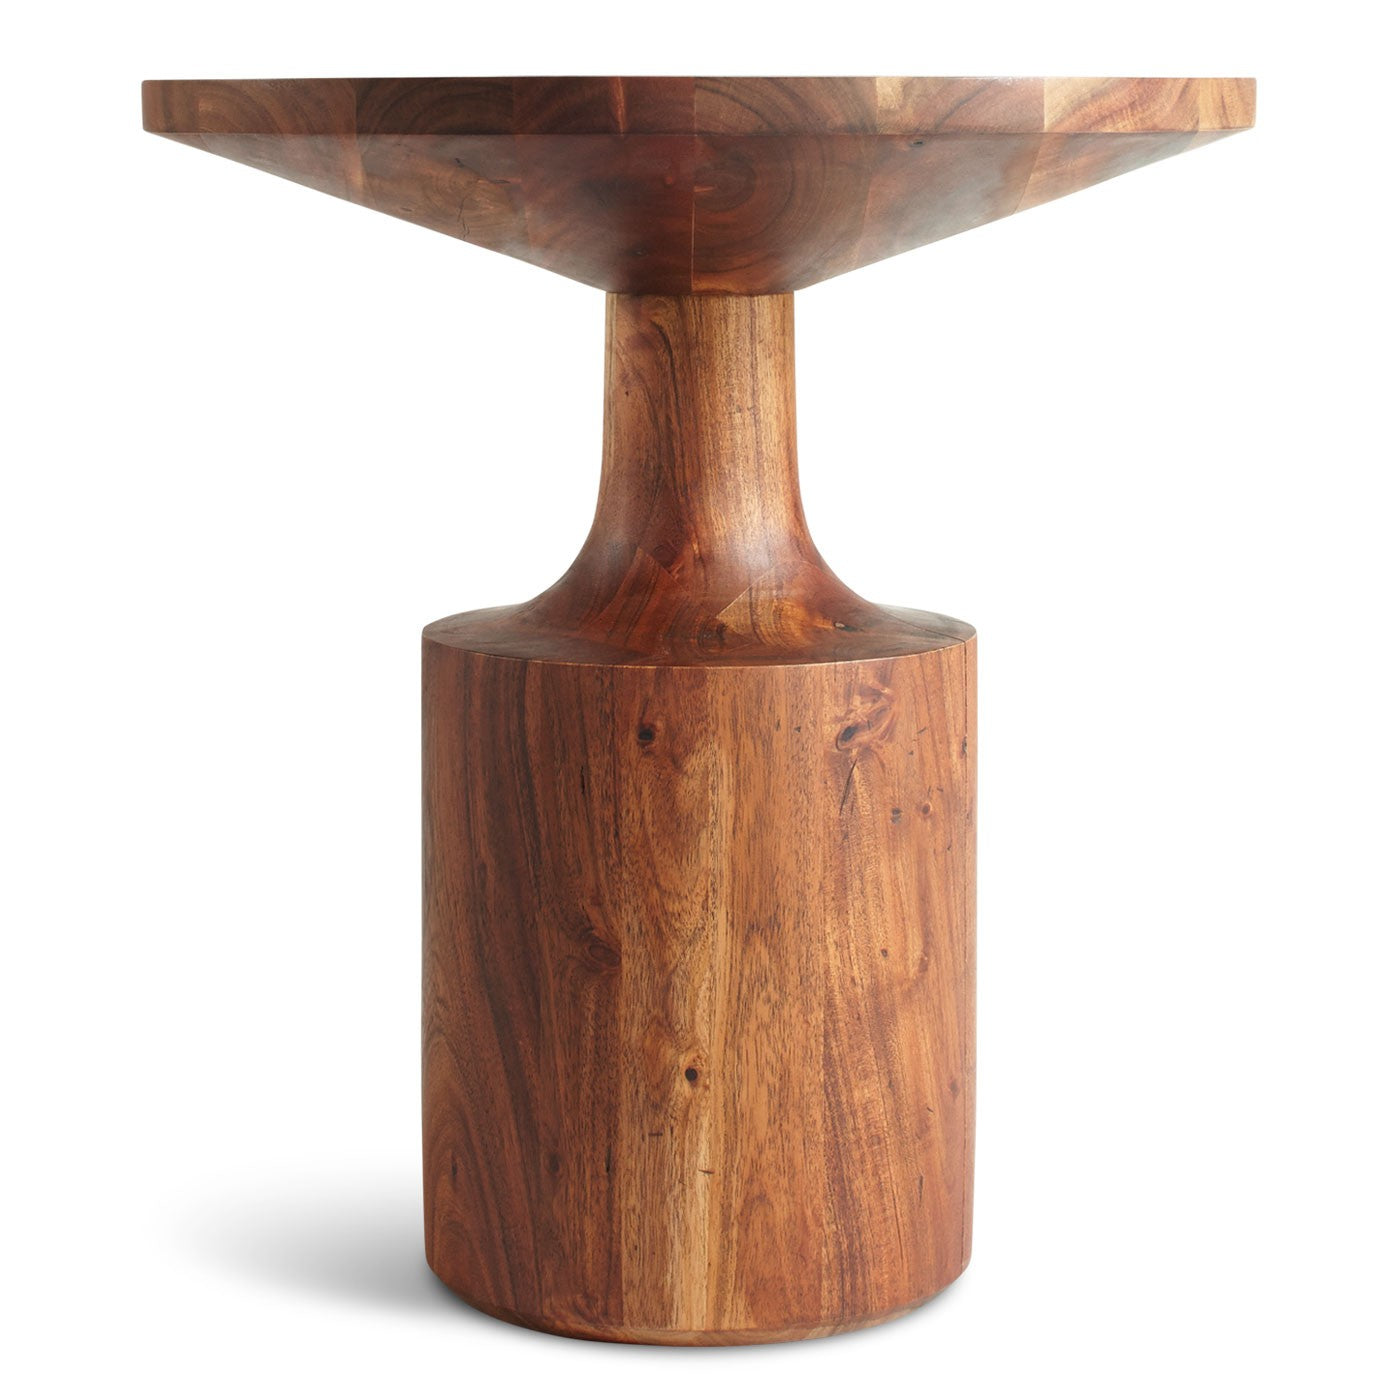 Turn Tall Side Table - Design Distillery